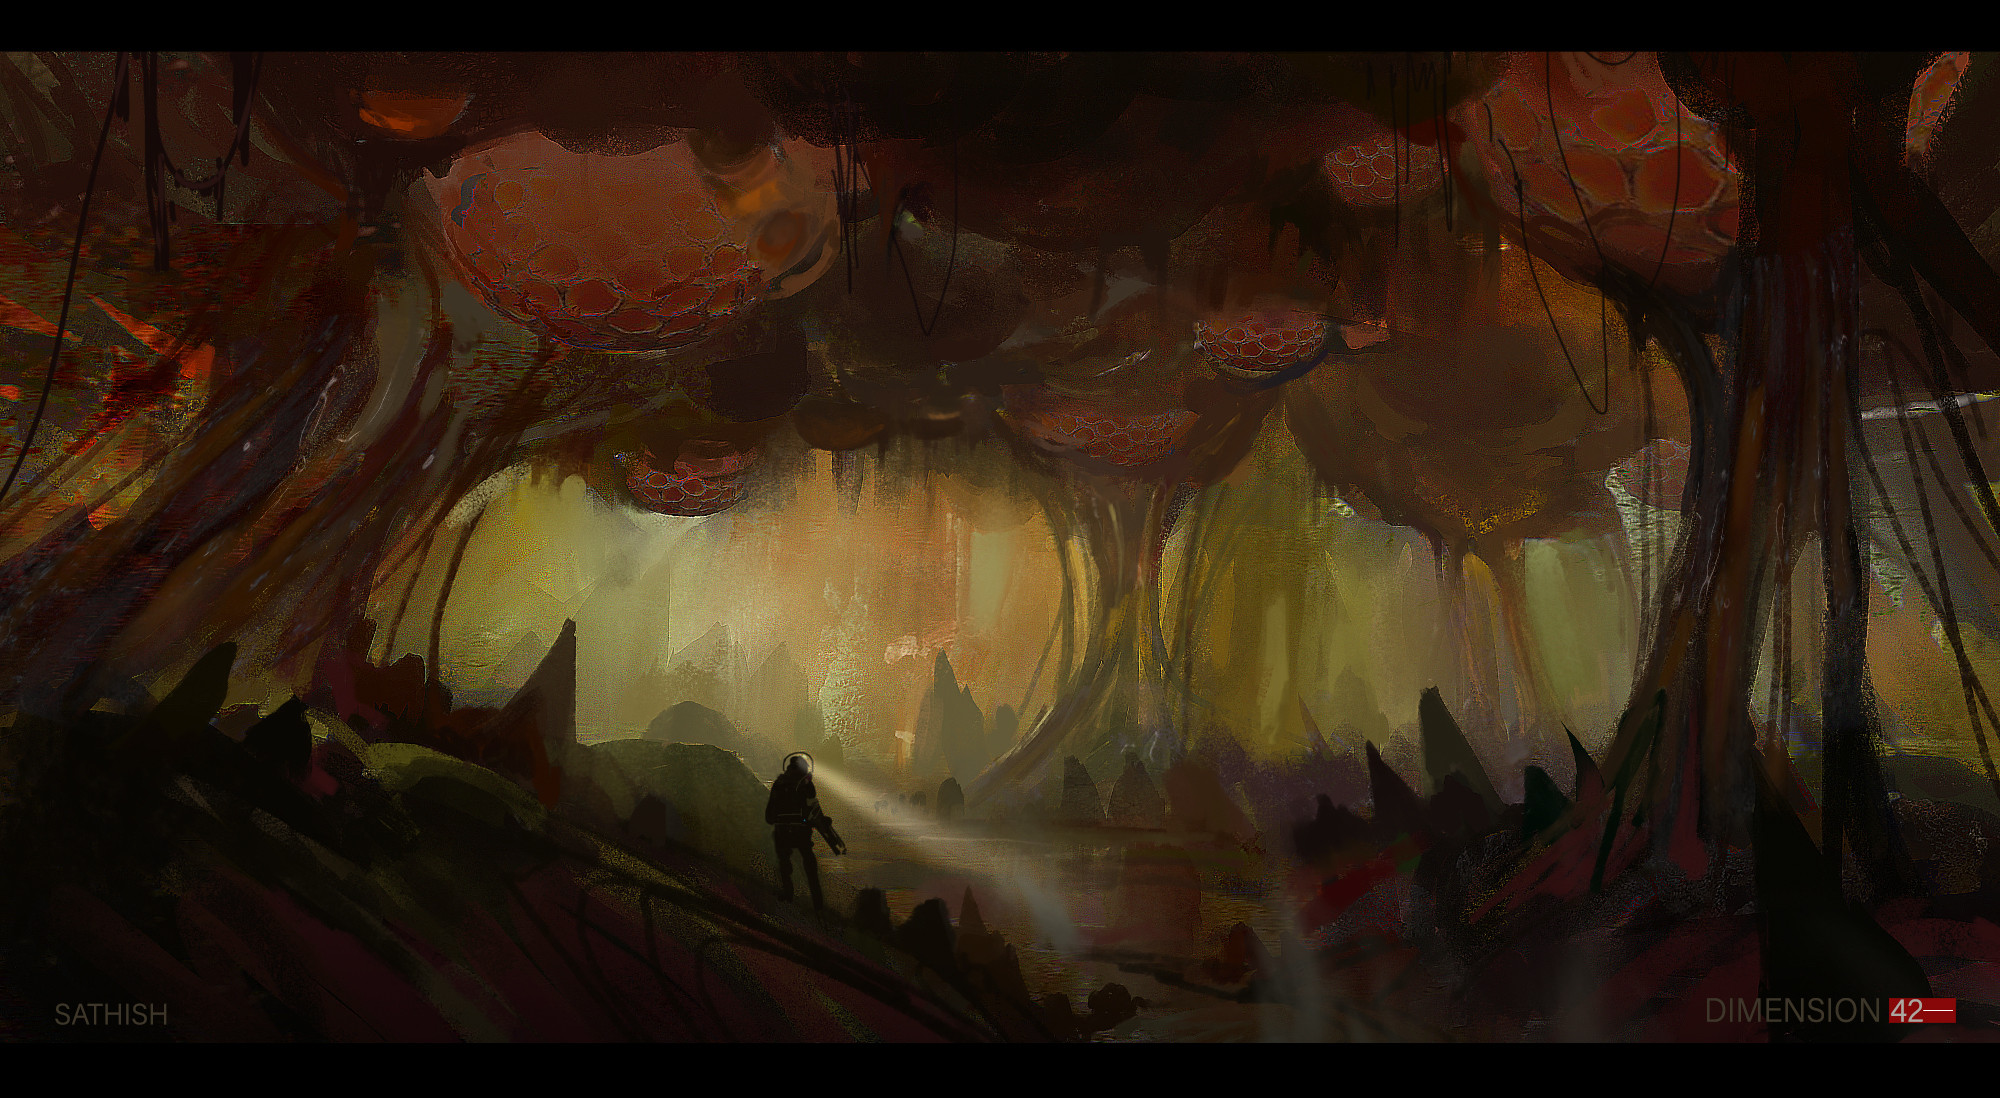 Exploration sketch 03